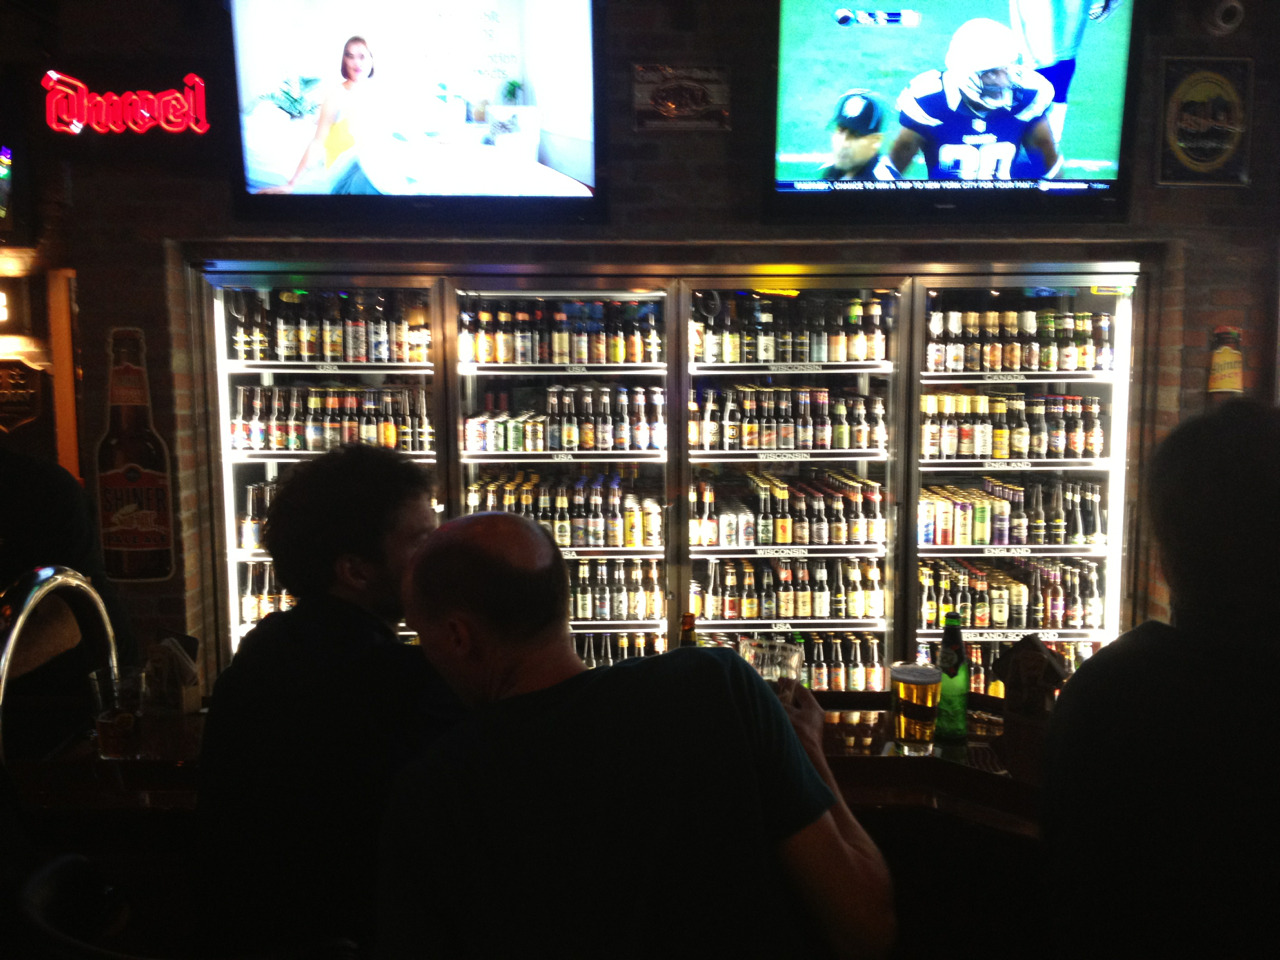 The new World of Beer on Brady is simply amazing. Over 500 beers! This photo isn't even half of them.